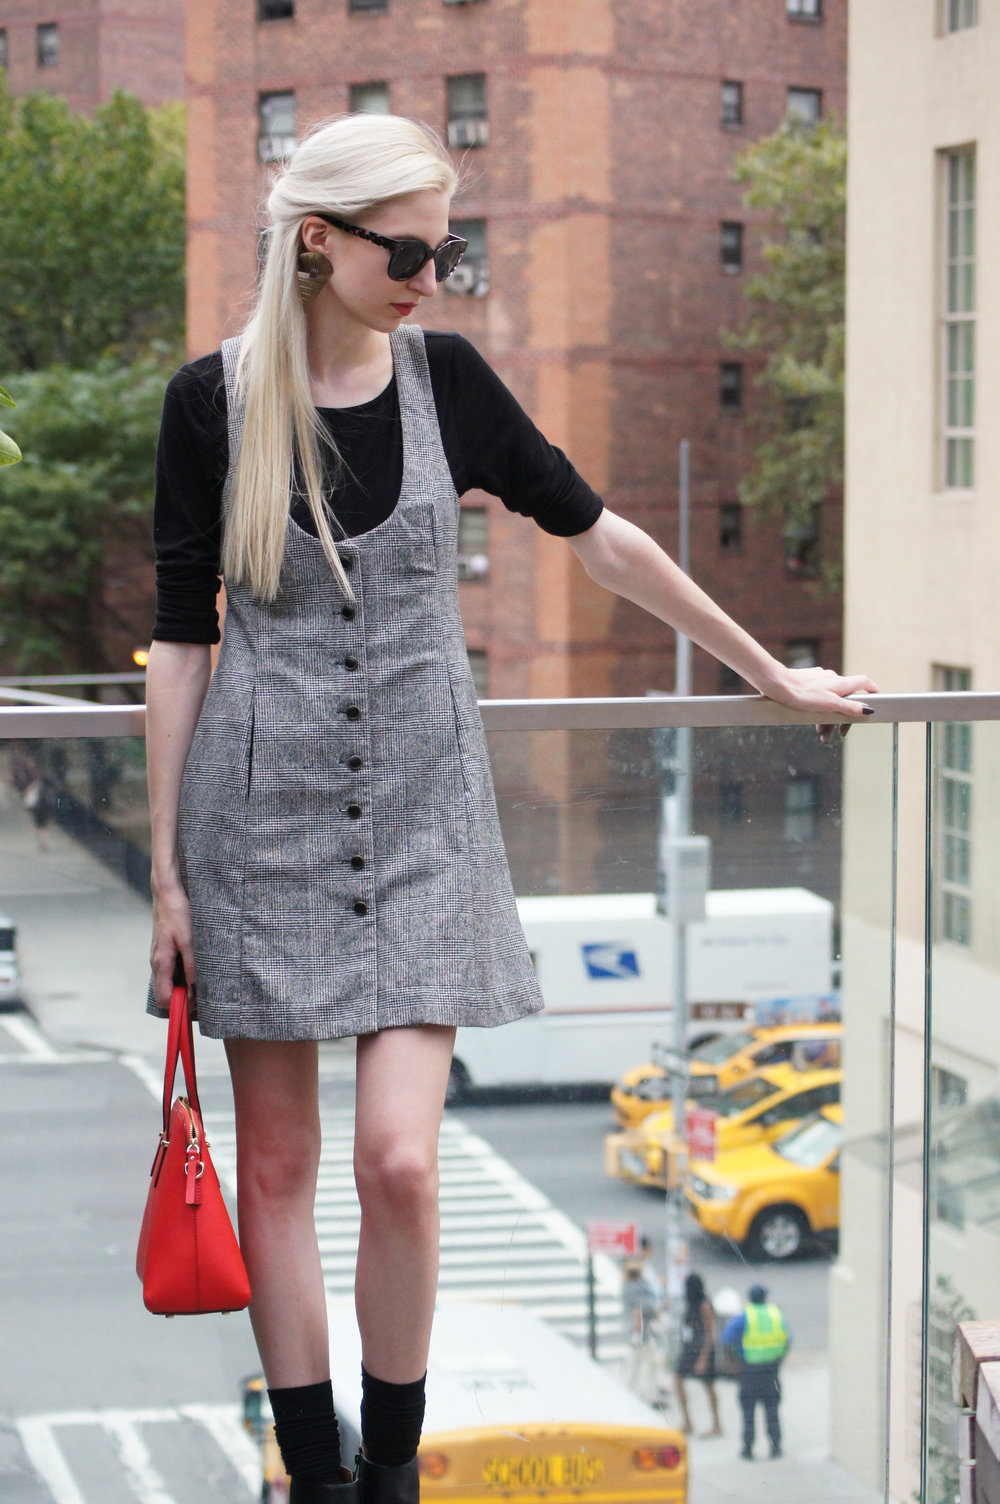 Audra Koch - vintage tibi tweed apron dress, loft black longsleeve, Next black heeled ankle boots, kate spade cedar street maise, vintage earrings, loft audrey hepburn sunglasses - Highline Park New York City